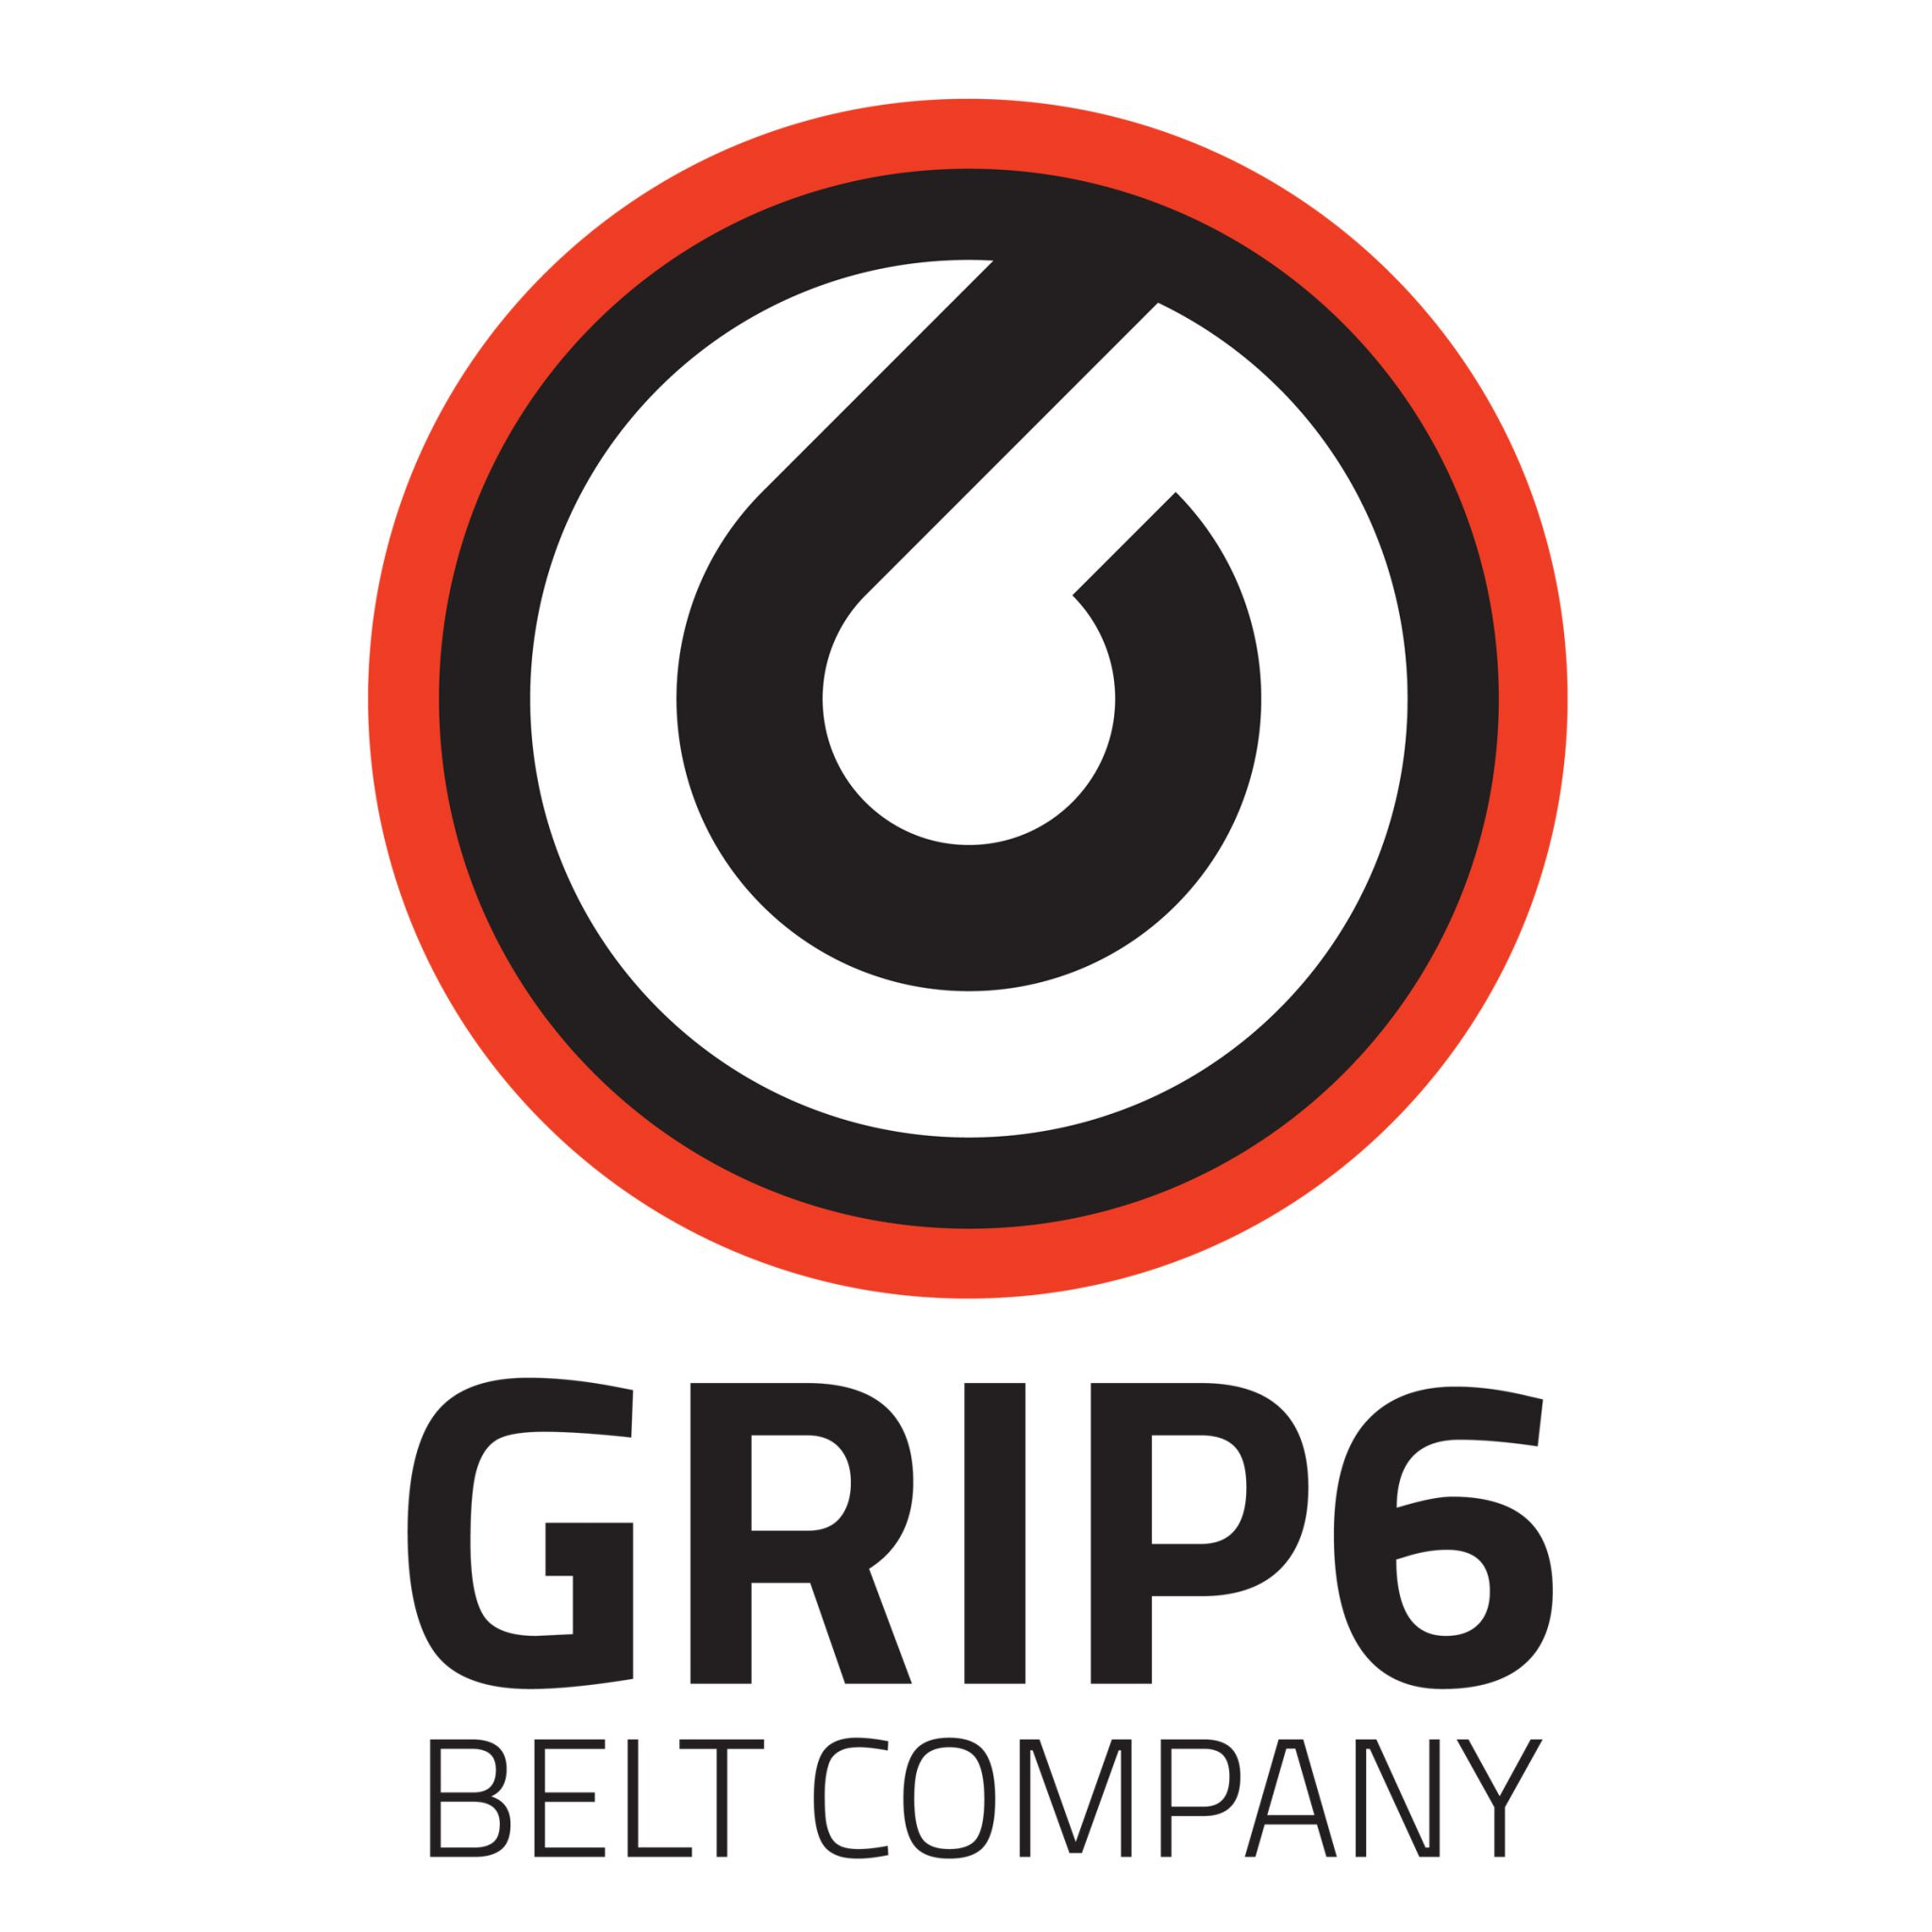 GRIP6 LOGO PACK